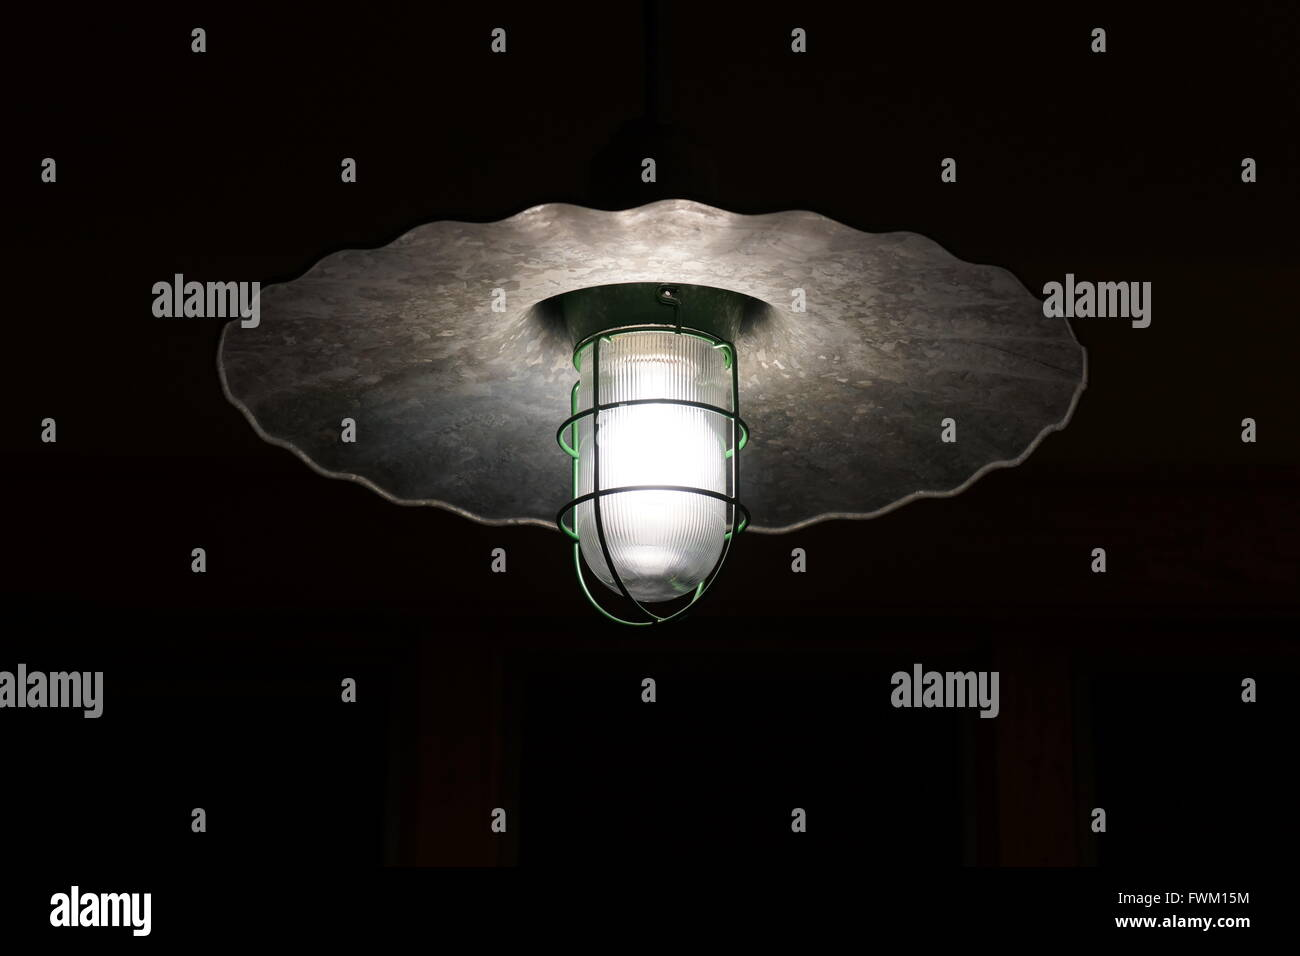 Low Angle View Of Illuminated Electric Bulb - Stock Image